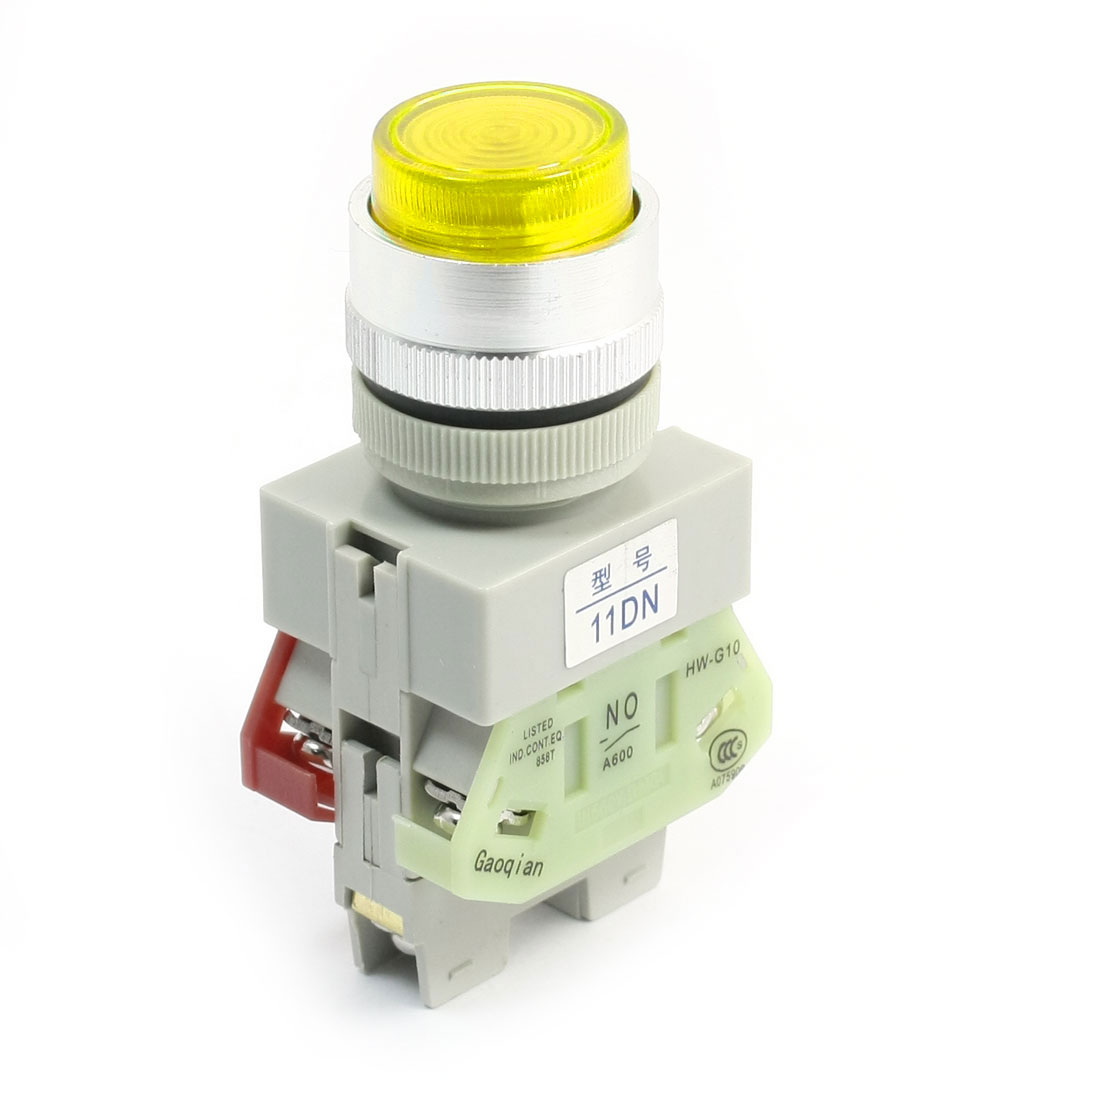 DPST Momentary Yellow Light Round Head Operator Push Button Switch 660V 10A